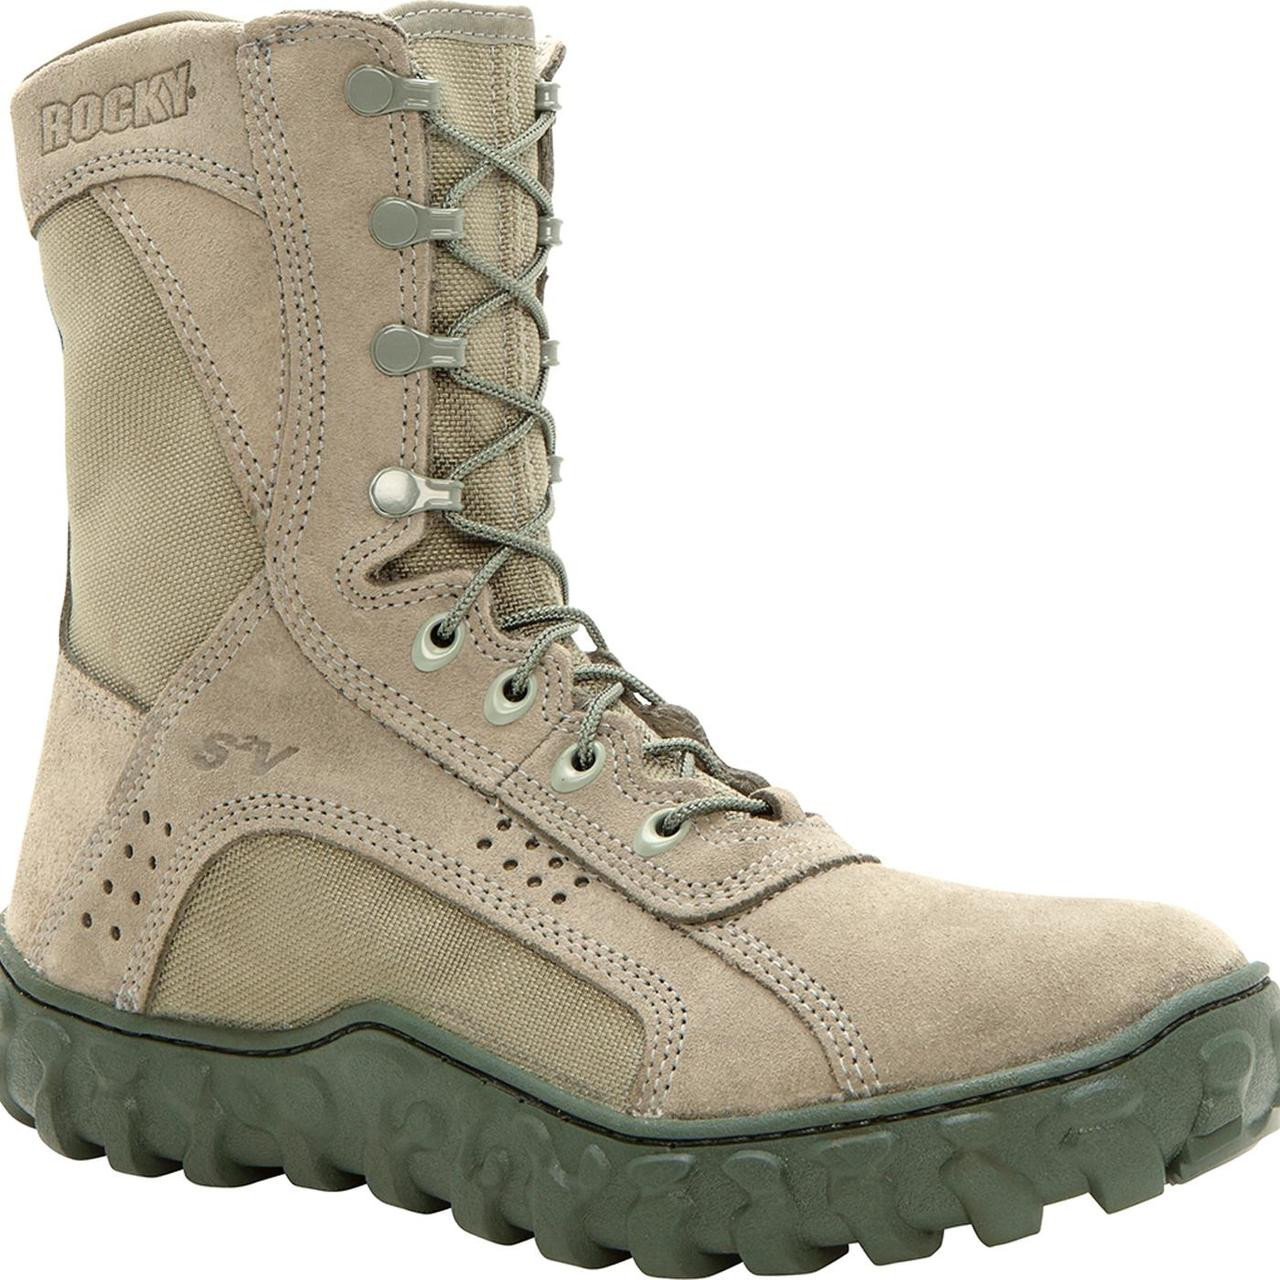 Rocky S2V Steel Toe Tactical Military